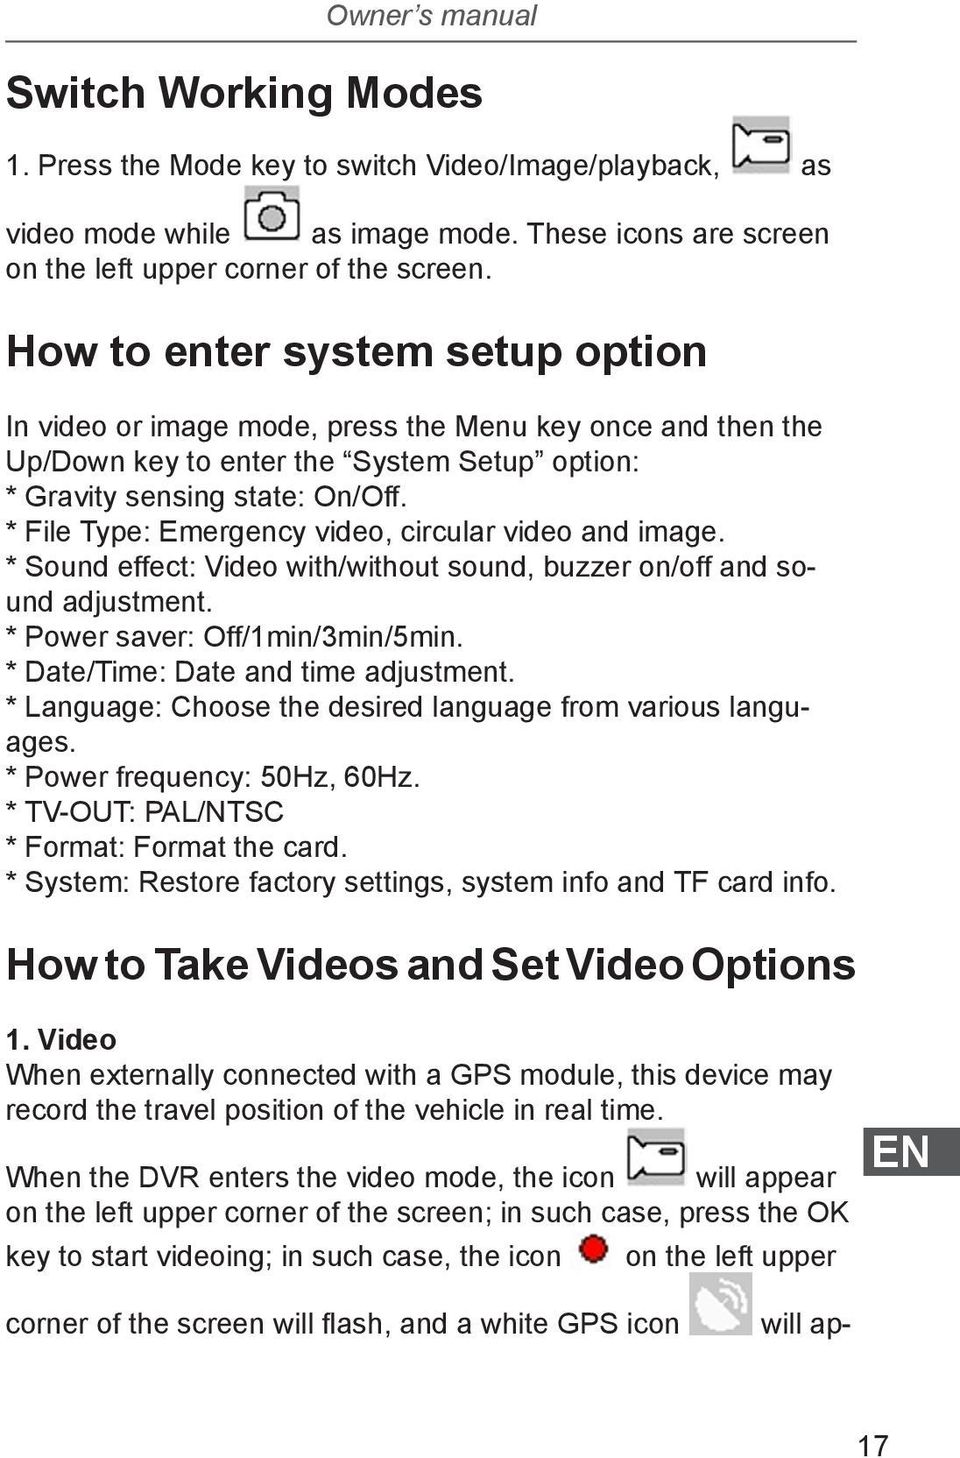 * File Type: Emergency video, circular video and image. * Sound effect: Video with/without sound, buzzer on/off and sound adjustment. * Power saver: Off/1min/3min/5min.